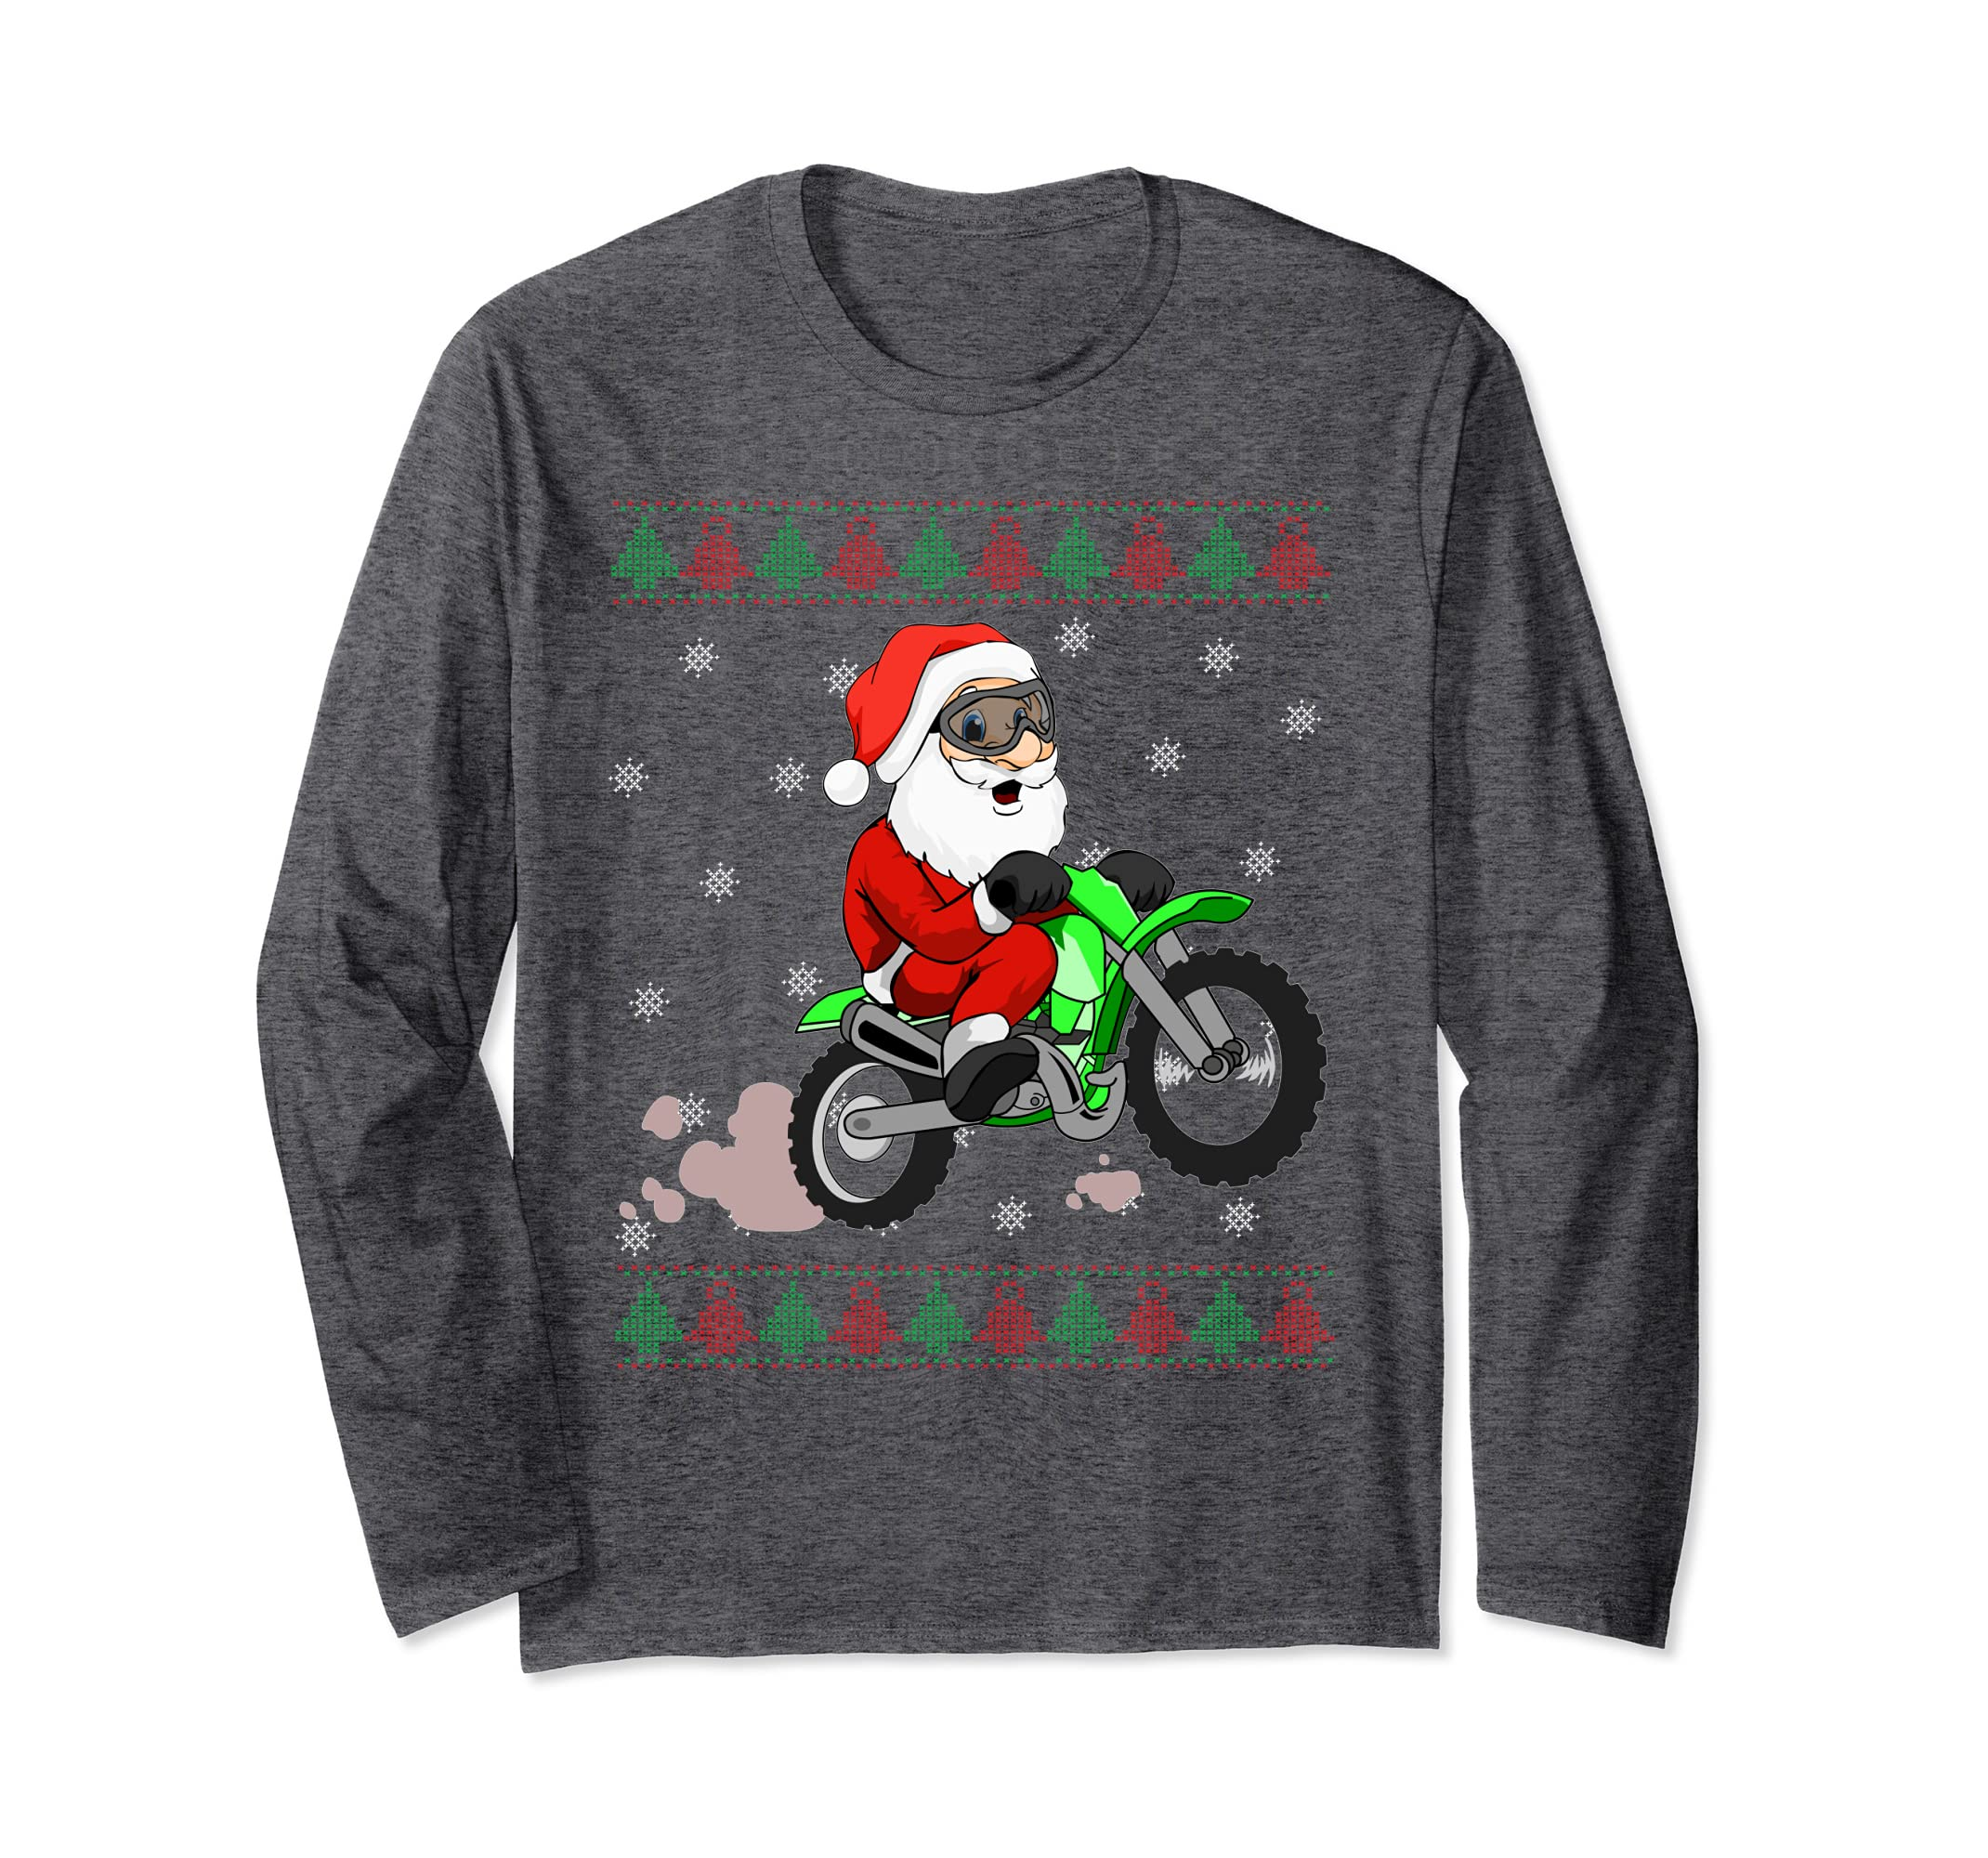 Amazon.com  Funny Santa Claus Motocross Long Sleeve Christmas Bike Shirt   Clothing 304a91999